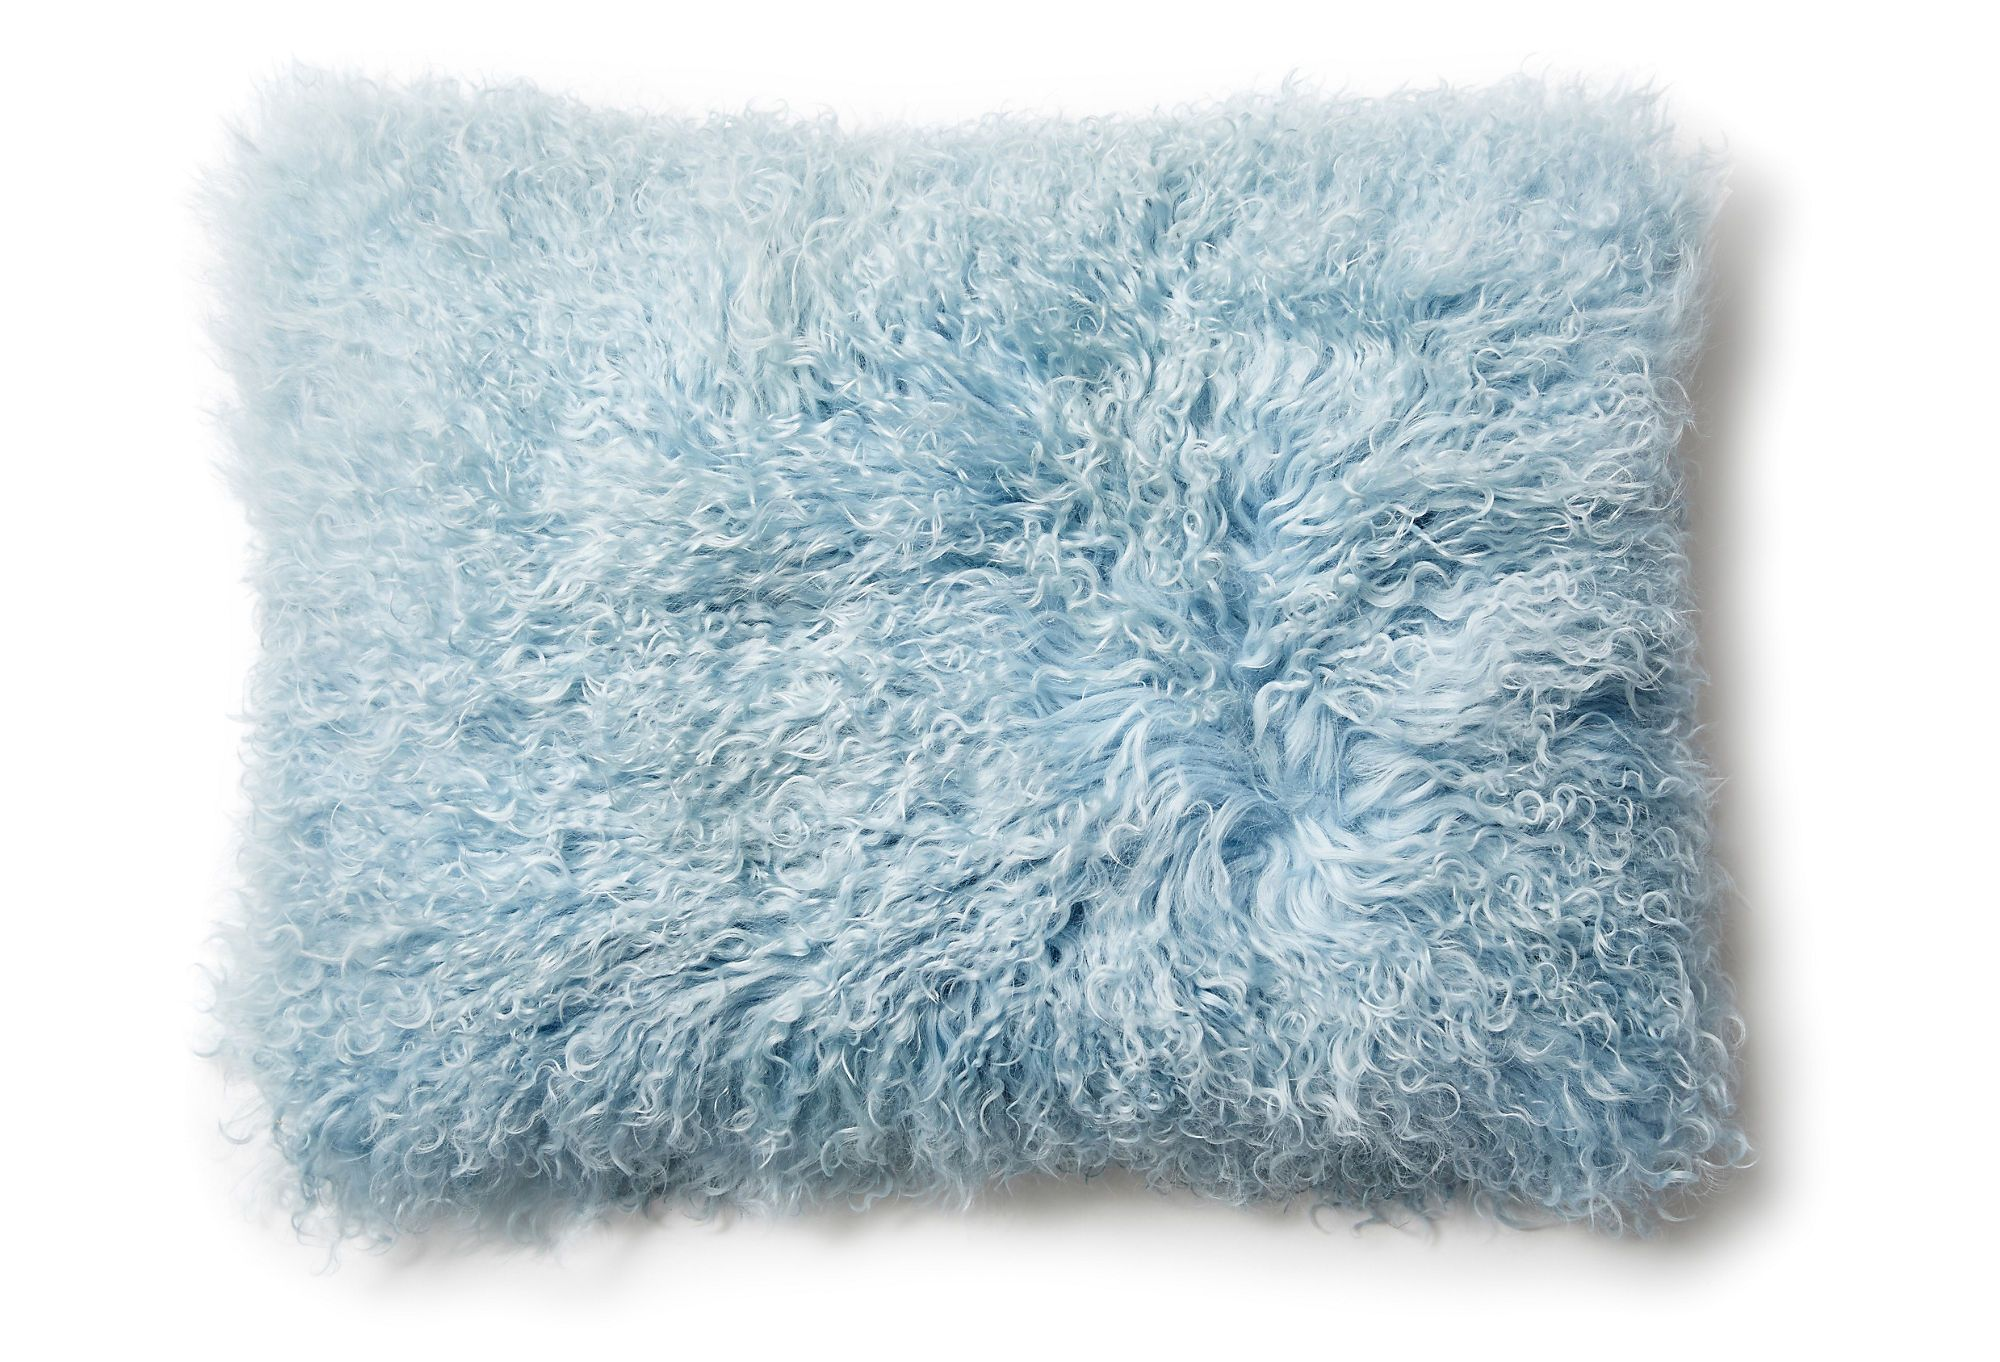 Mongolian Lumbar Pillow in Ice Blue from One Kings Lane Light